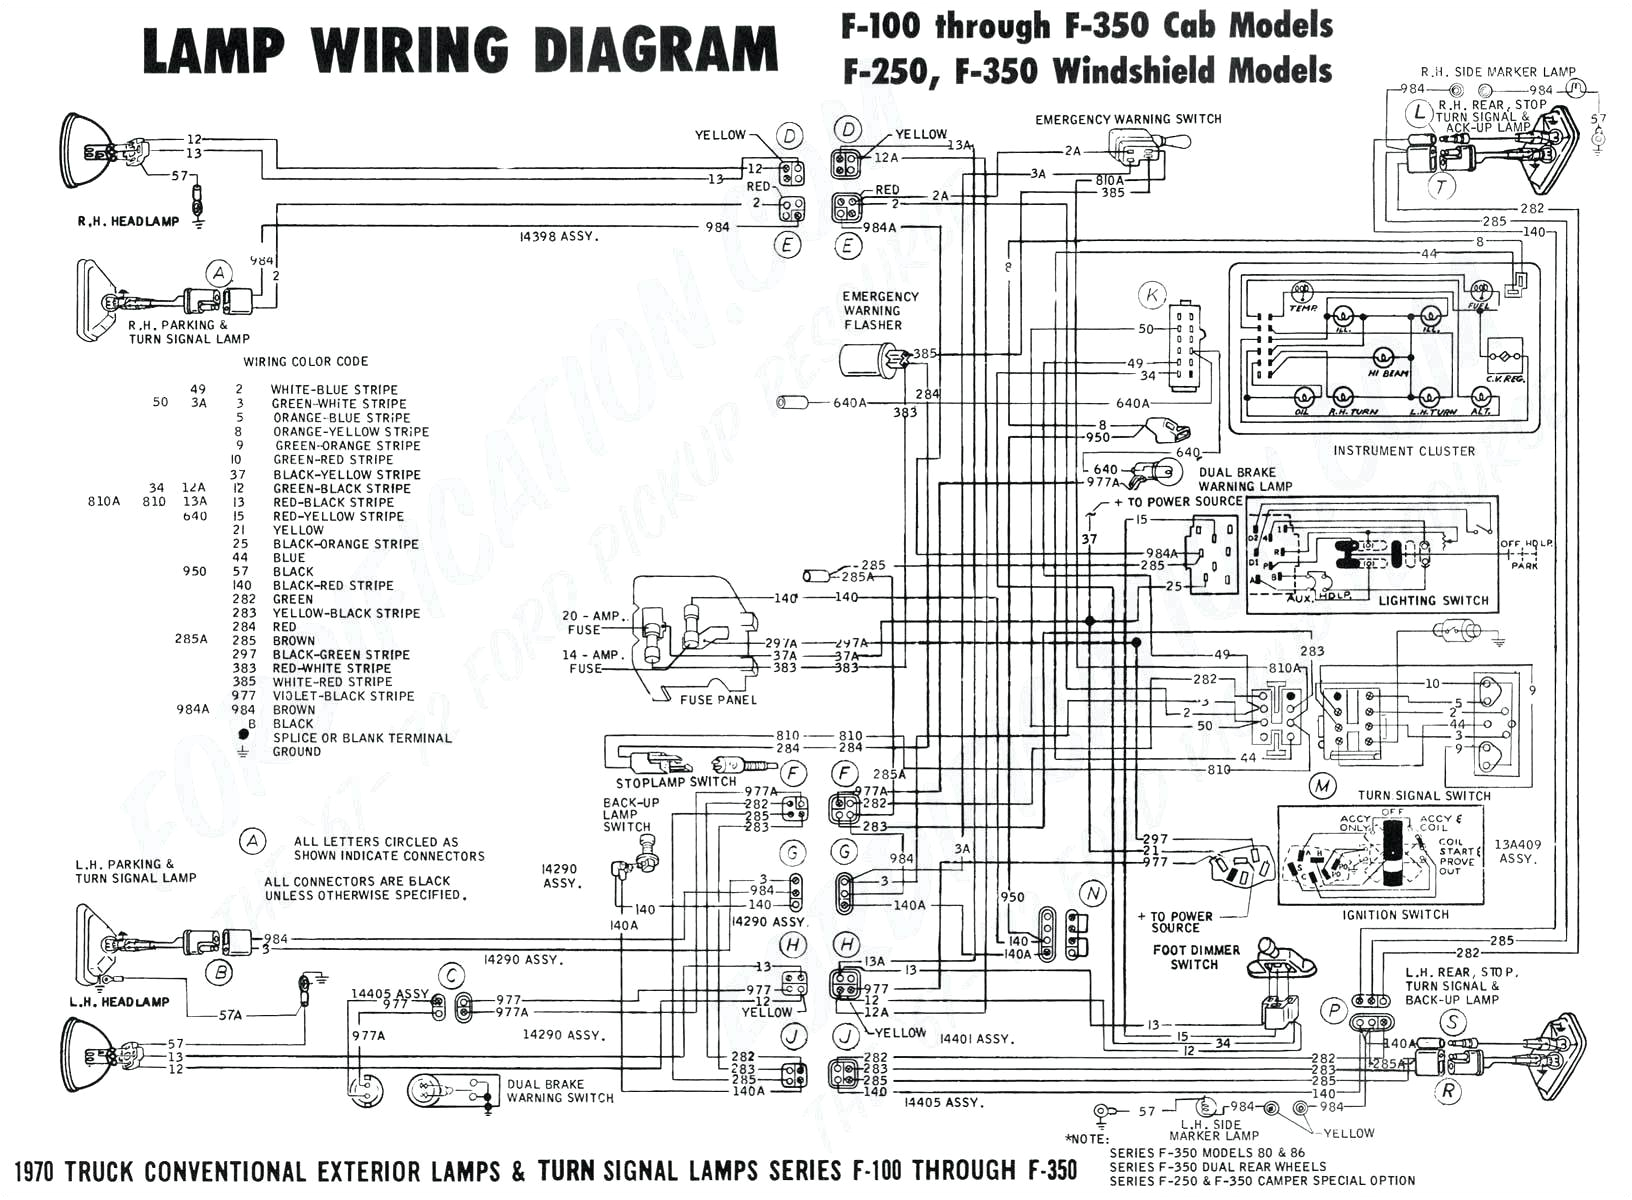 ford f250 trailer wiring harness diagram ford f 350 wiring diagram wiring data rh unroutine co 2006 ford f350 wiring diagram ford super duty wiring diagram 15m jpg